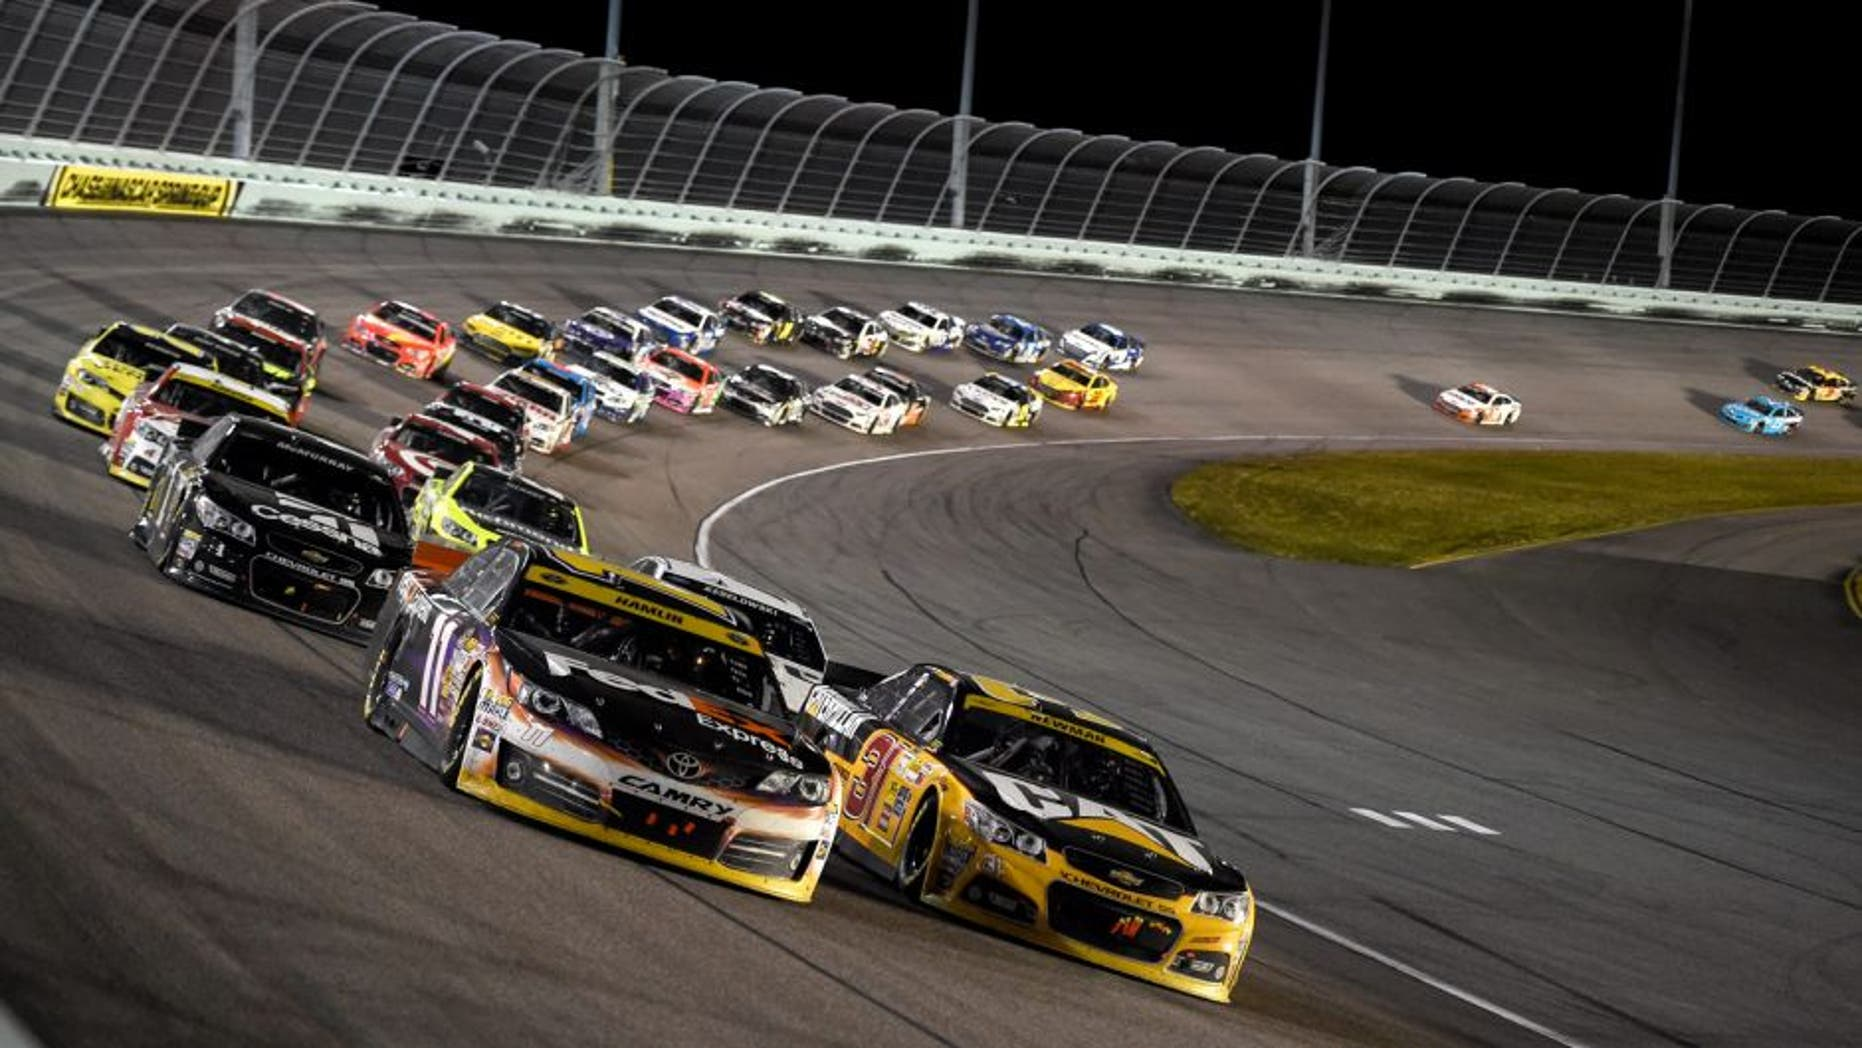 HOMESTEAD, FL - NOVEMBER 16: Denny Hamlin, driver of the #11 FedEx Express Toyota, races with Ryan Newman, driver of the #31 Caterpillar Chevrolet, during the NASCAR Sprint Cup Series Ford EcoBoost 400 at Homestead-Miami Speedway on November 16, 2014 in Homestead, Florida.